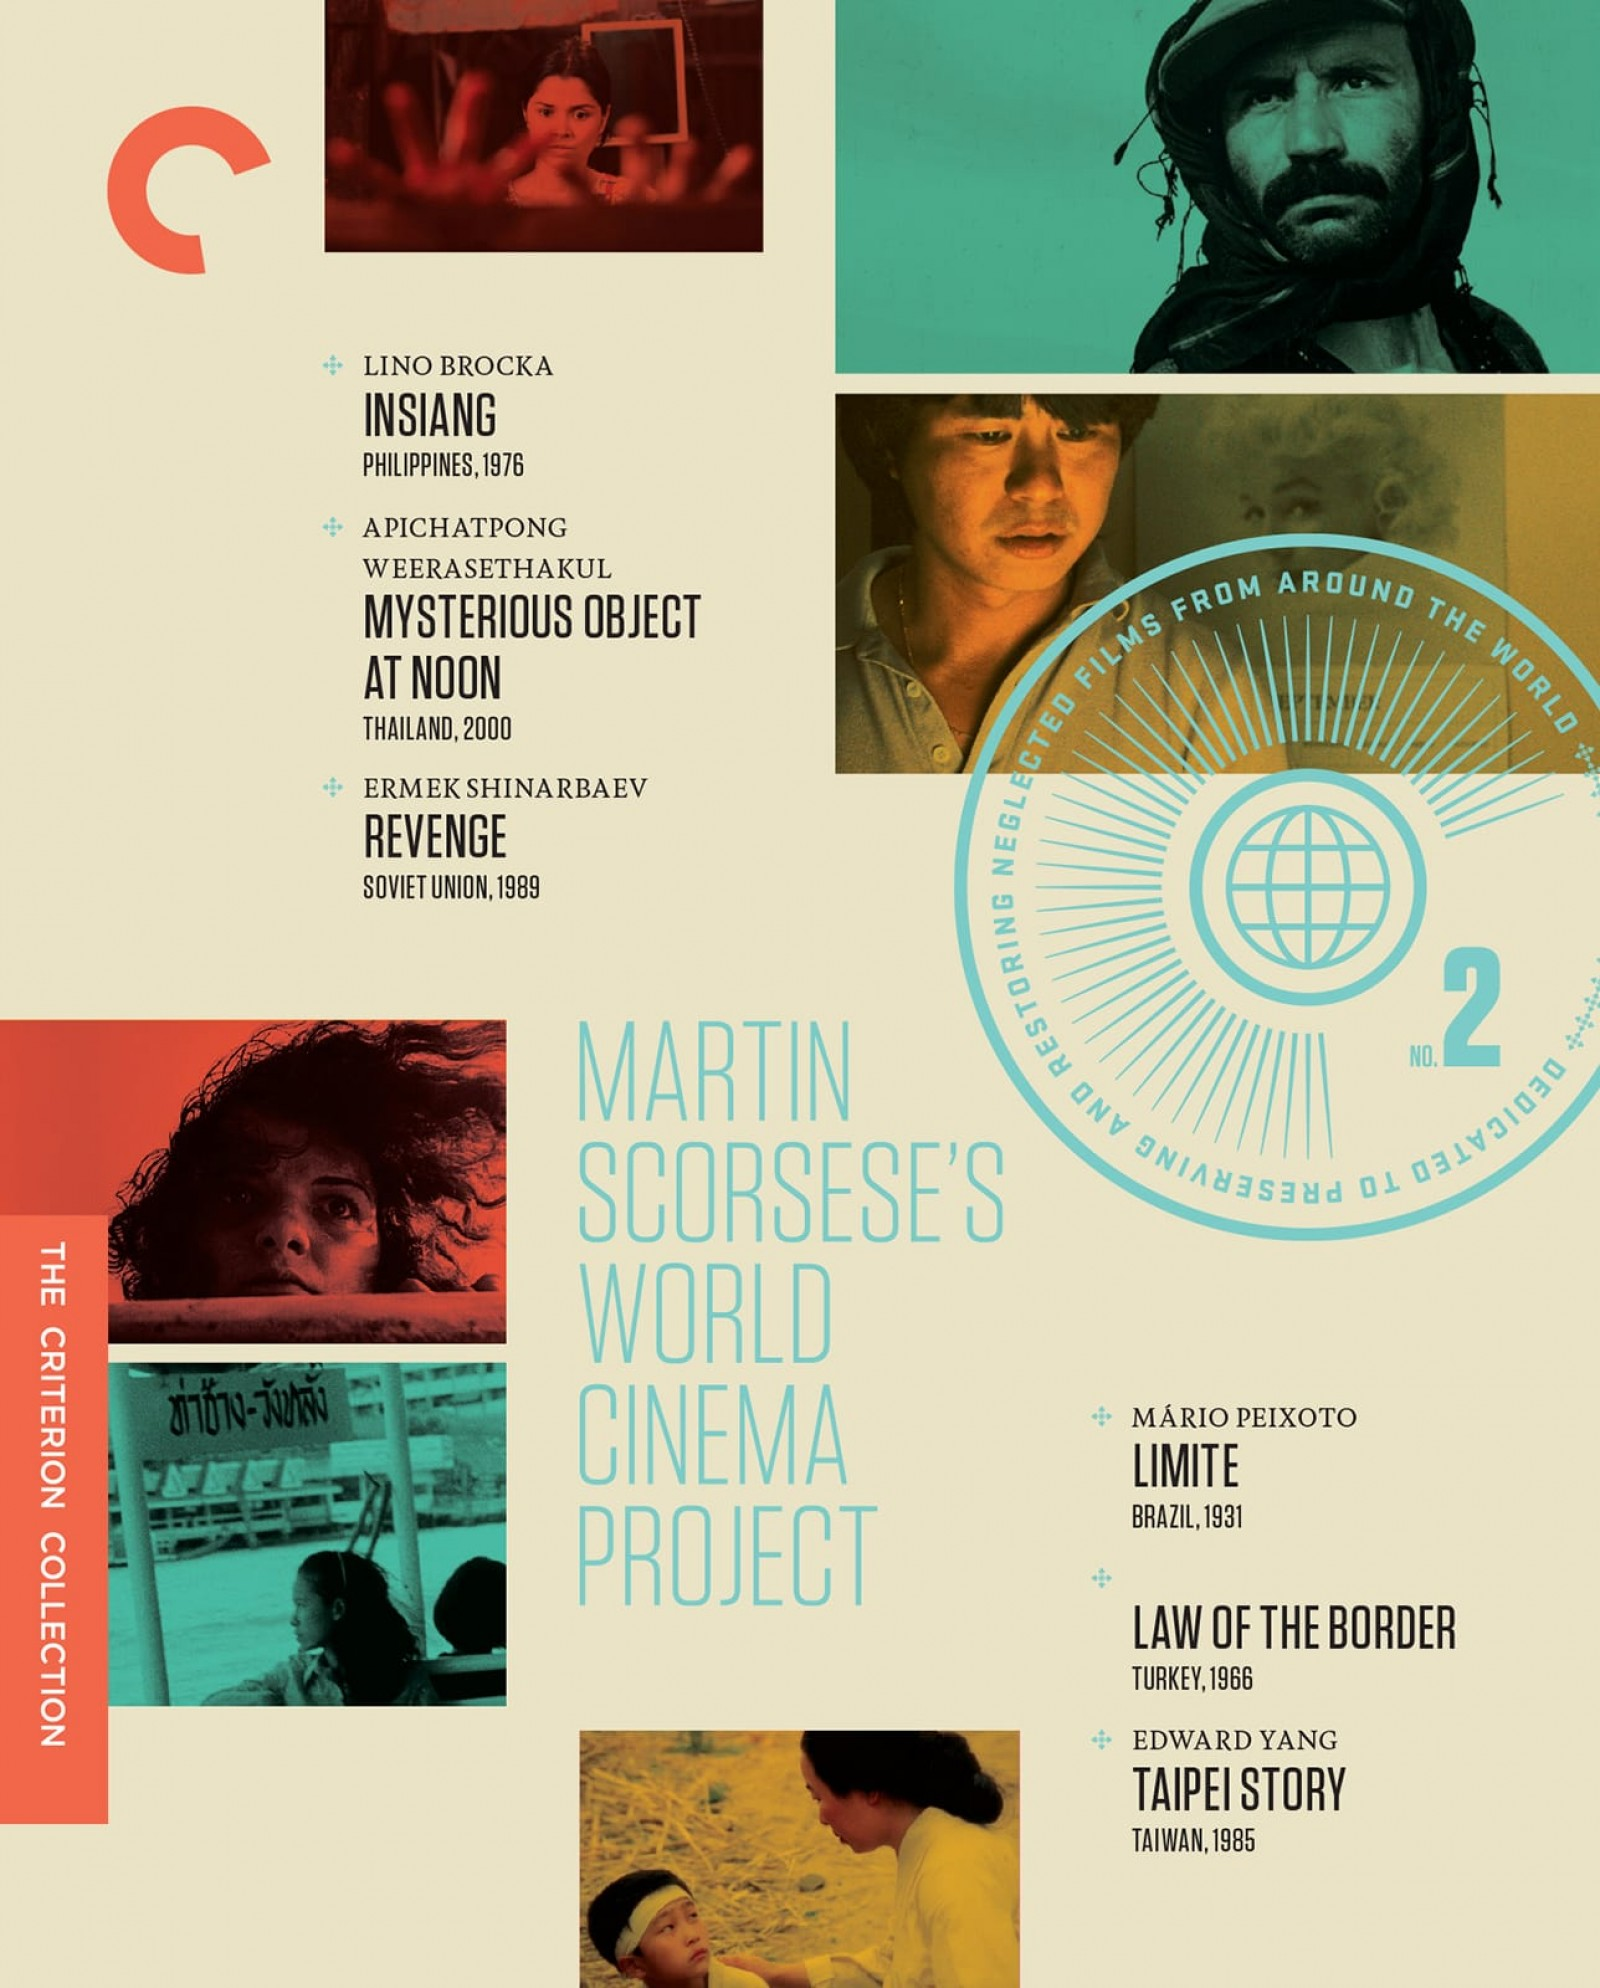 Martin Scorsese's World Cinema Project No. 2